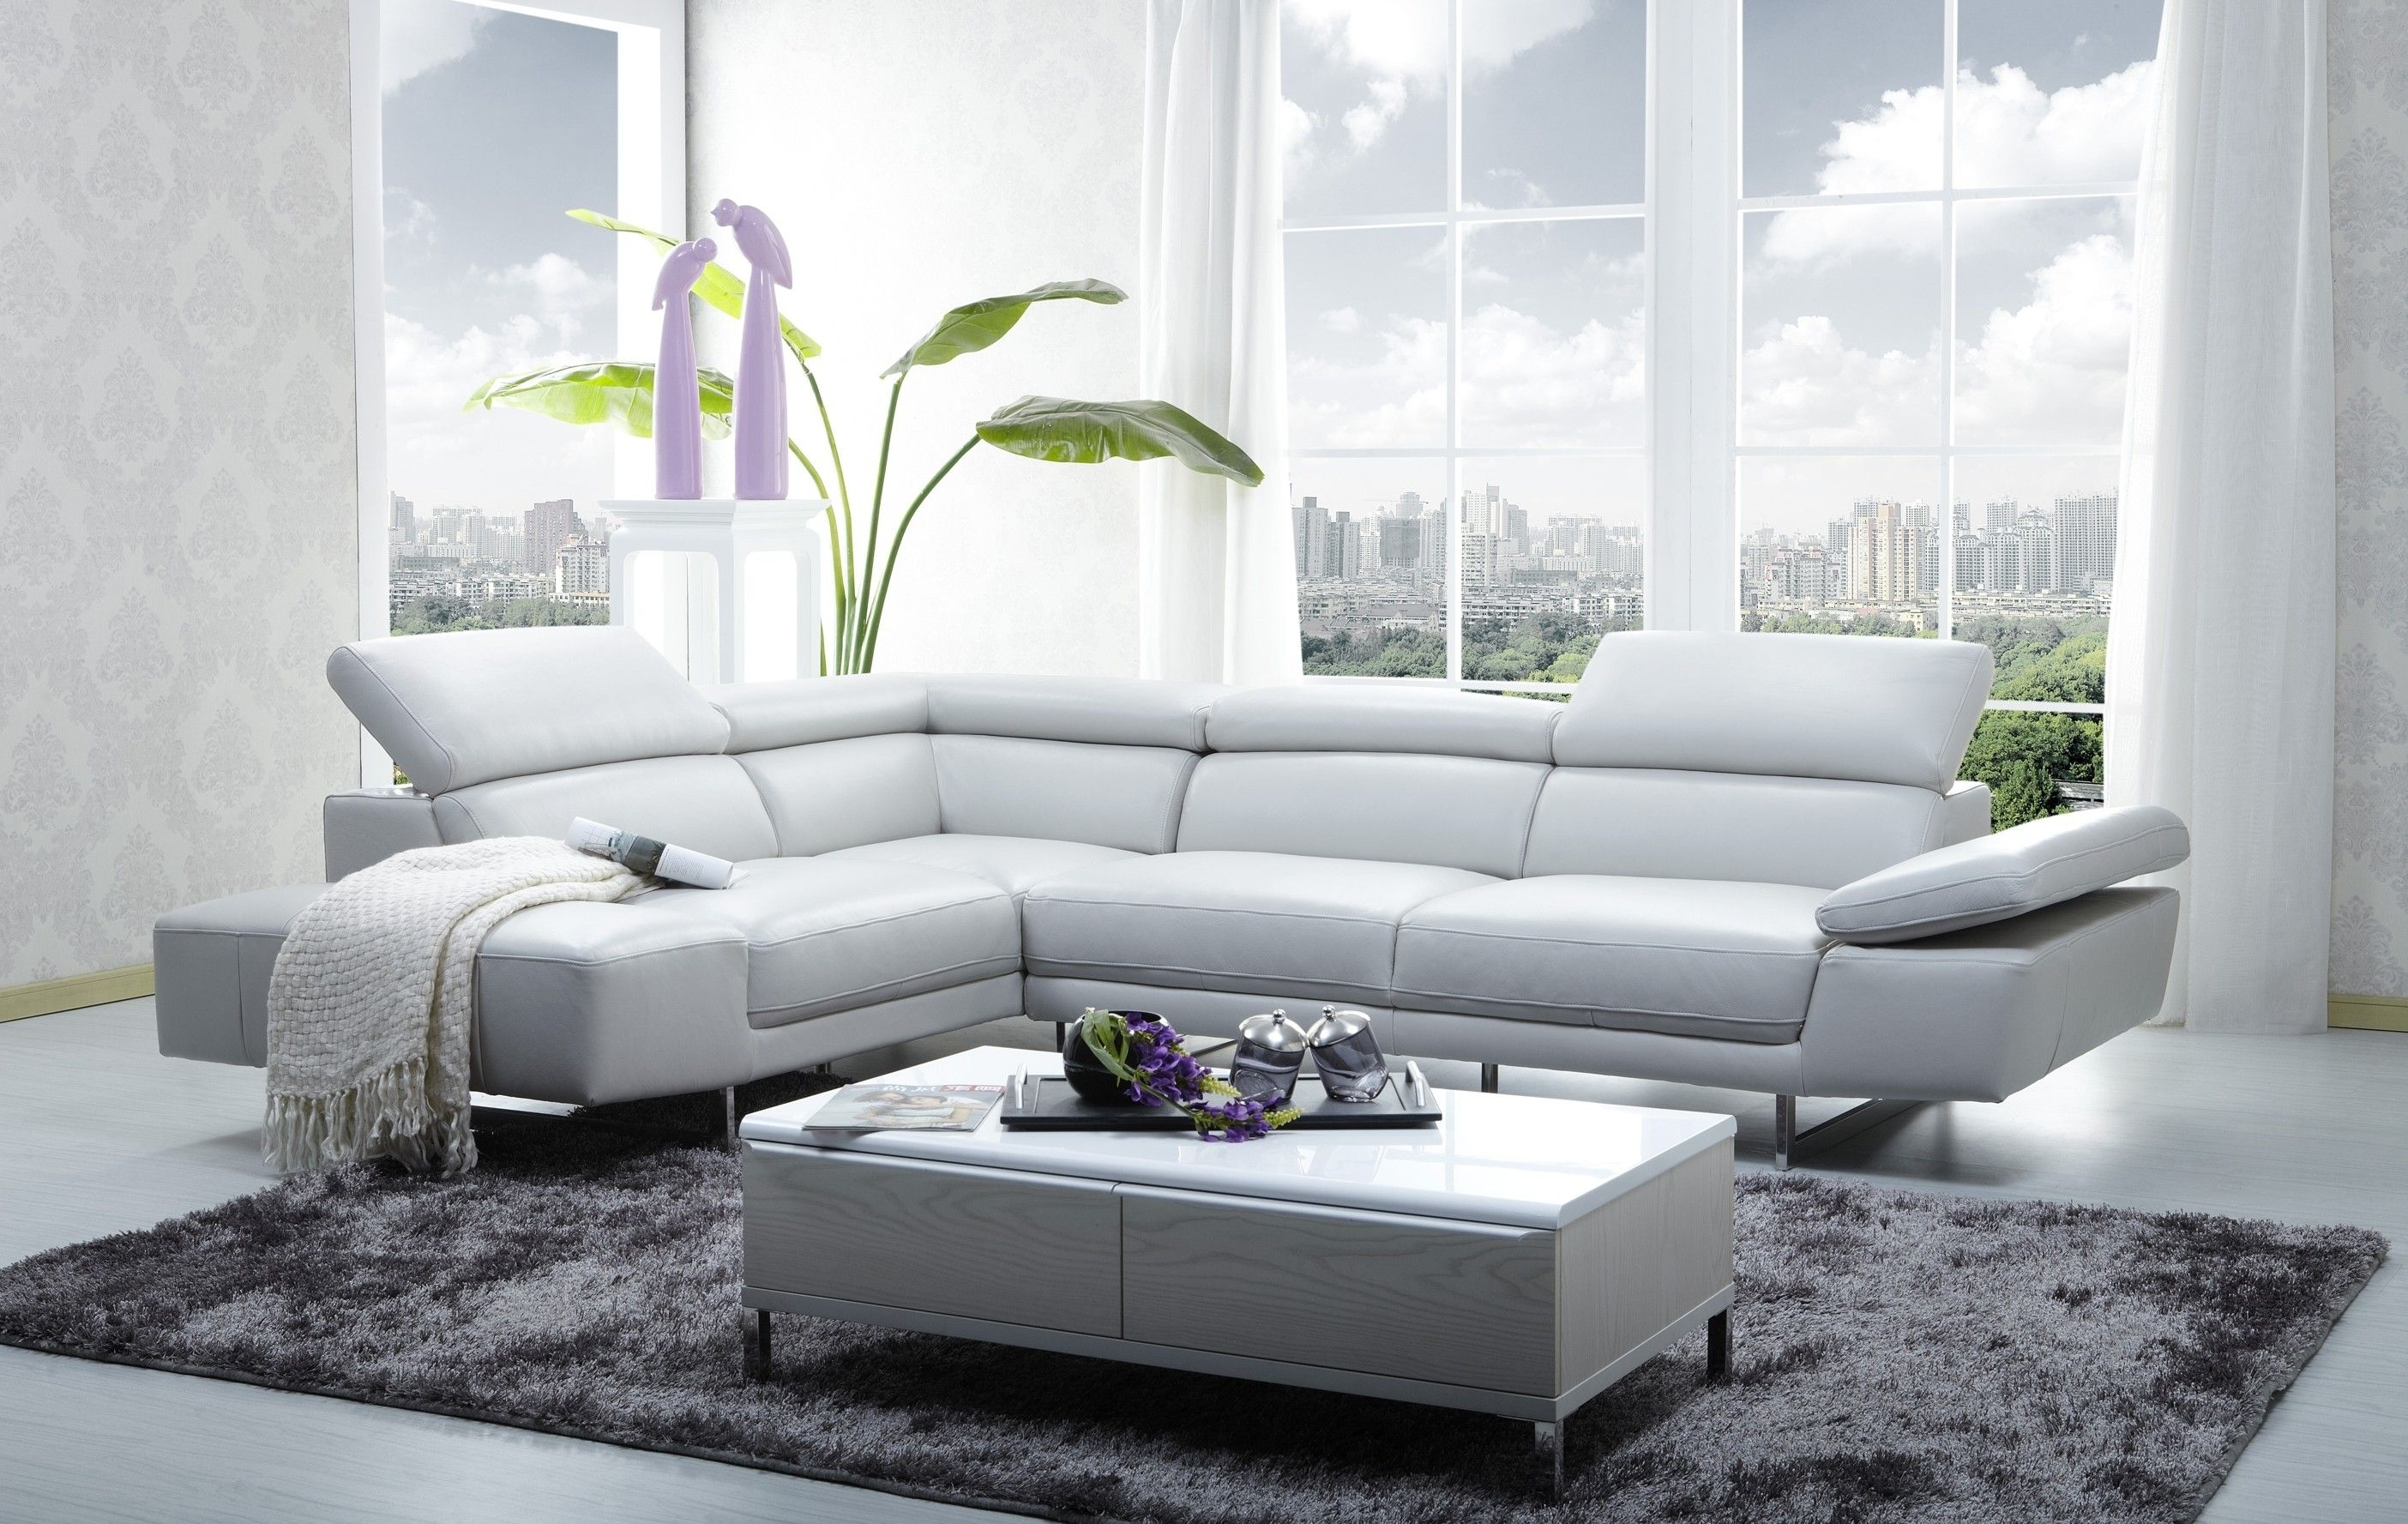 Cool Sectional Sofas Chicago , Luxury Sectional Sofas Chicago 44 for Sectional Sofas at Chicago (Image 5 of 15)